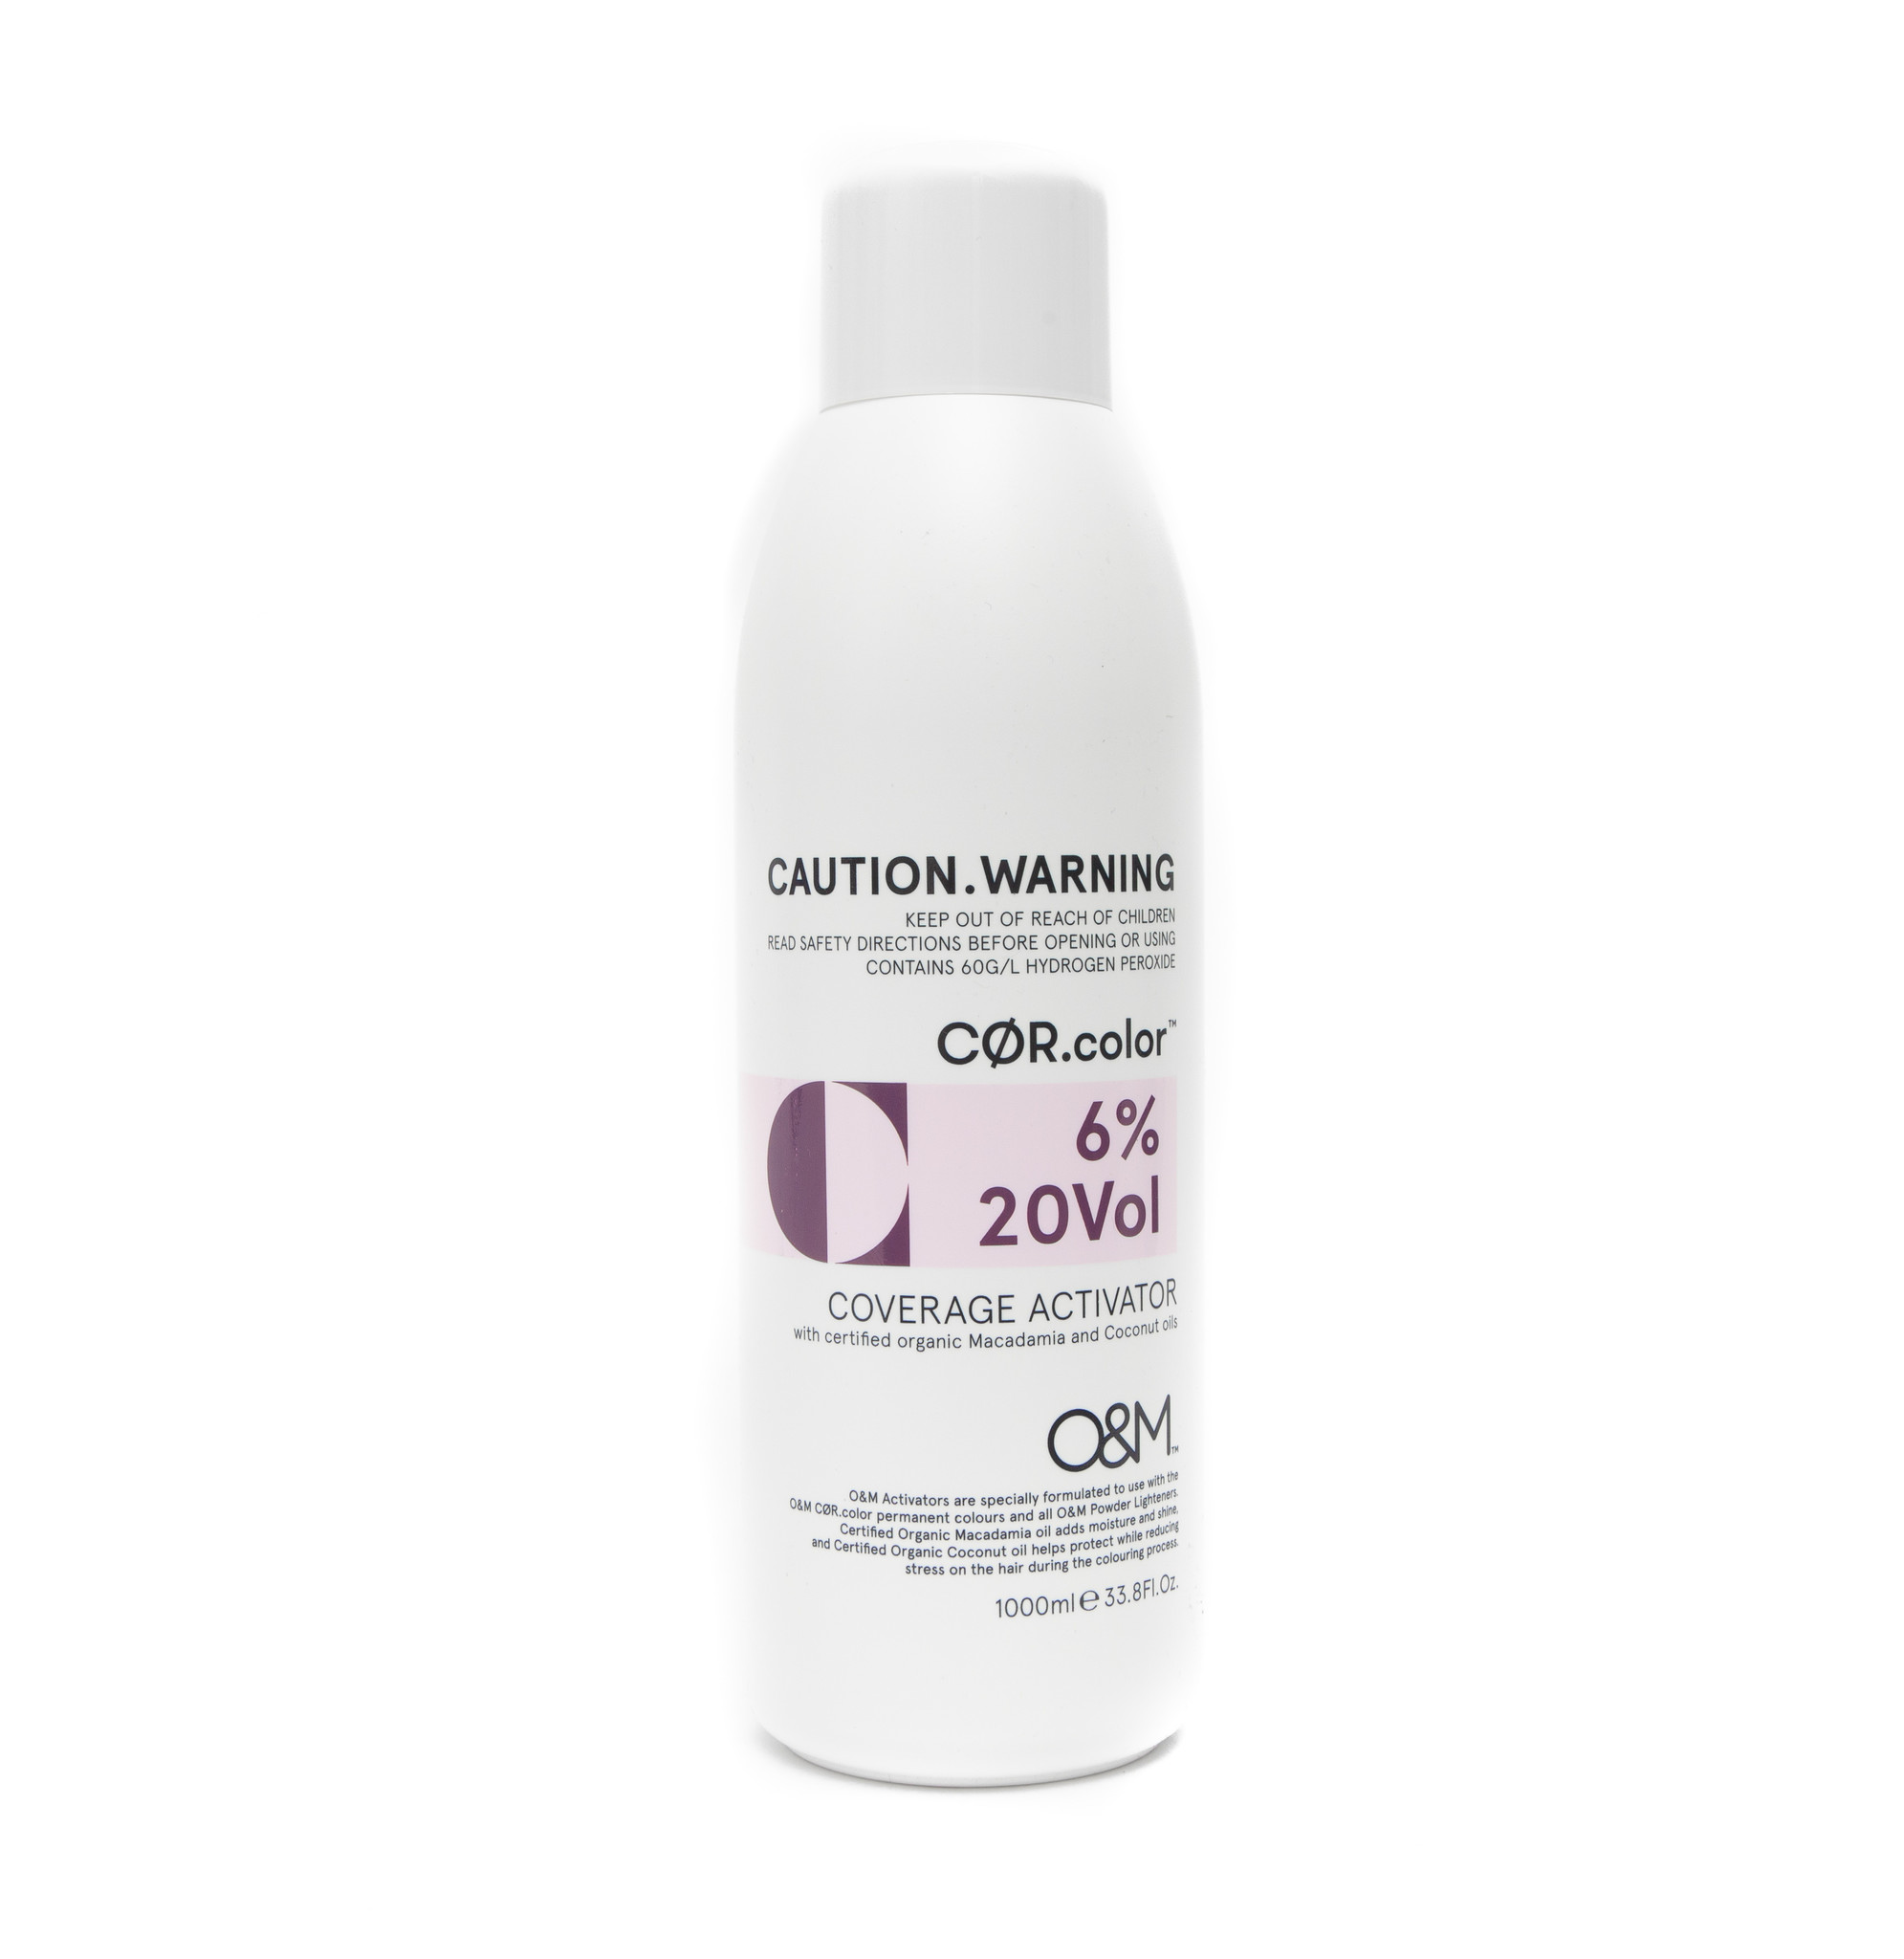 O&M - Original Mineral O&M CØR.COLOR Coverage Activator 20Vol - 6% - 1000 ml